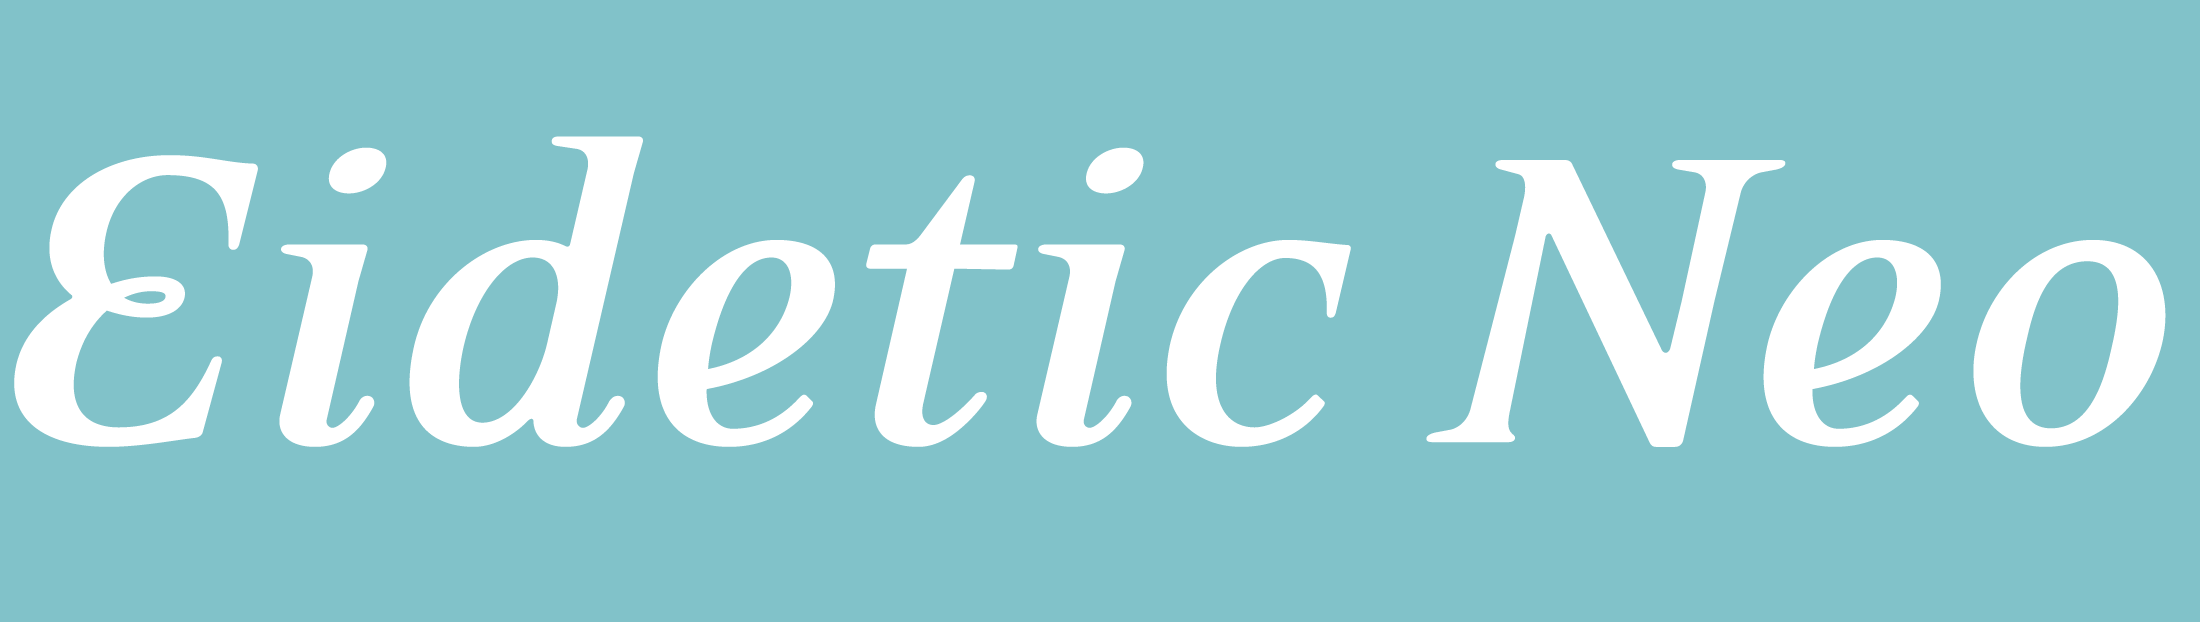 Eidetic Neo - PSY/OPS Type Foundry